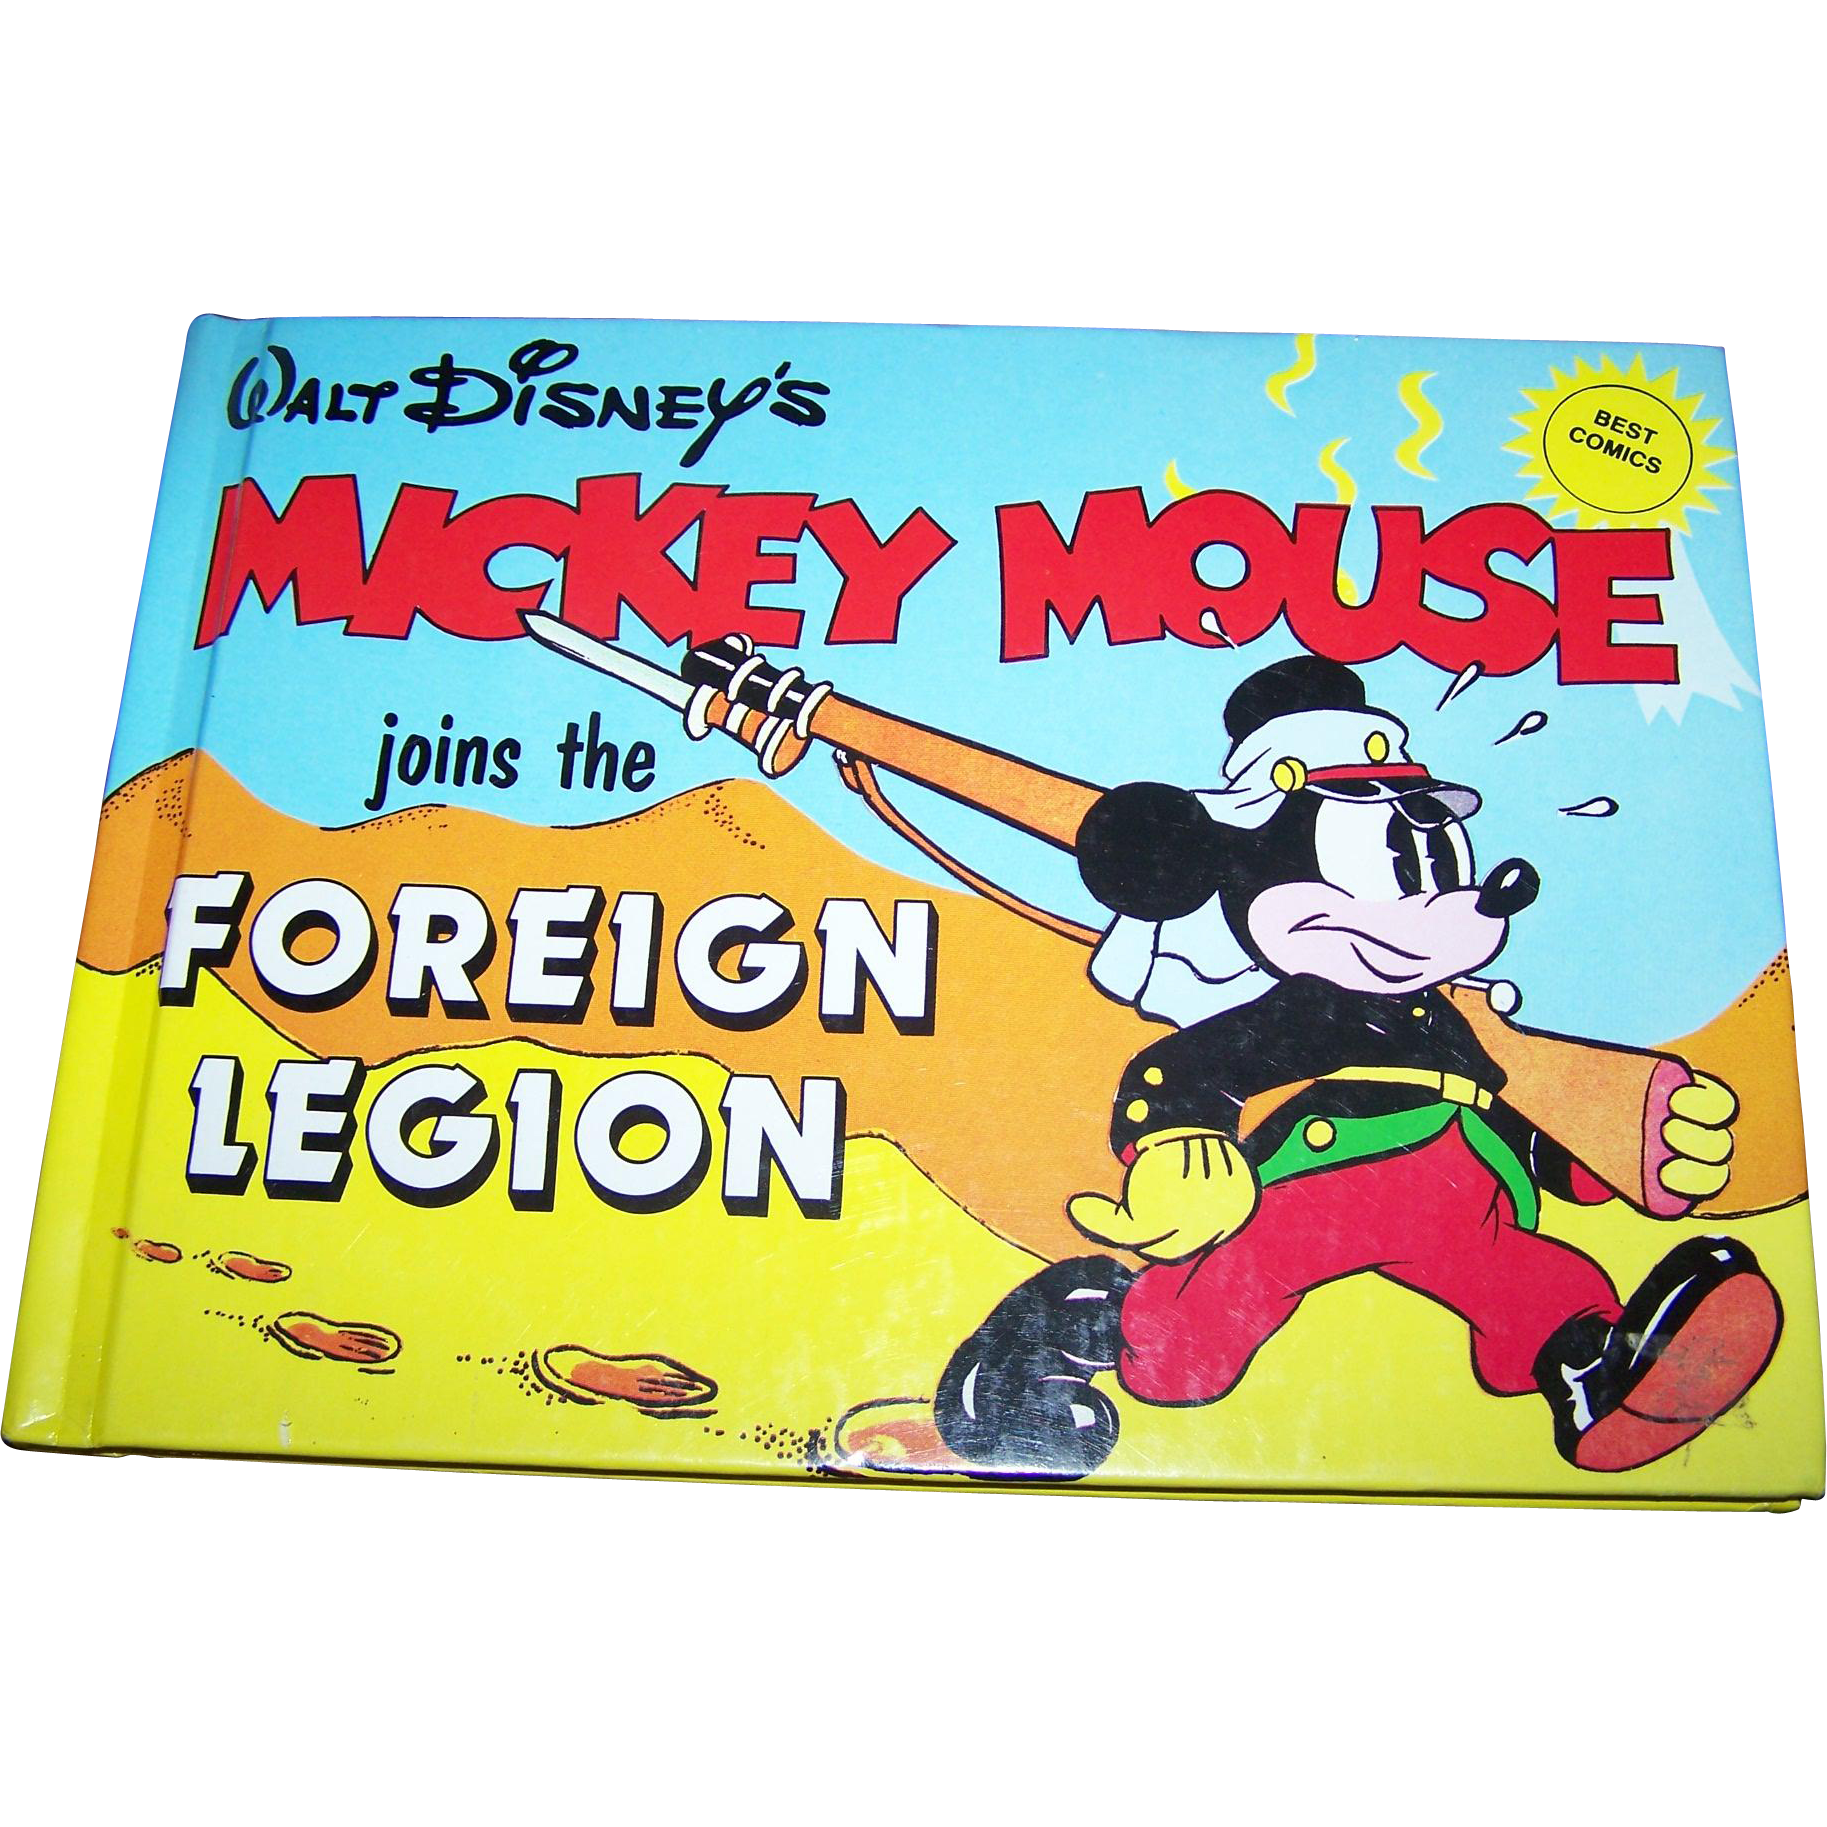 Walt Disney's Mickey Mouse Joins the Foreign Legion Best Comic Hard Cover Book